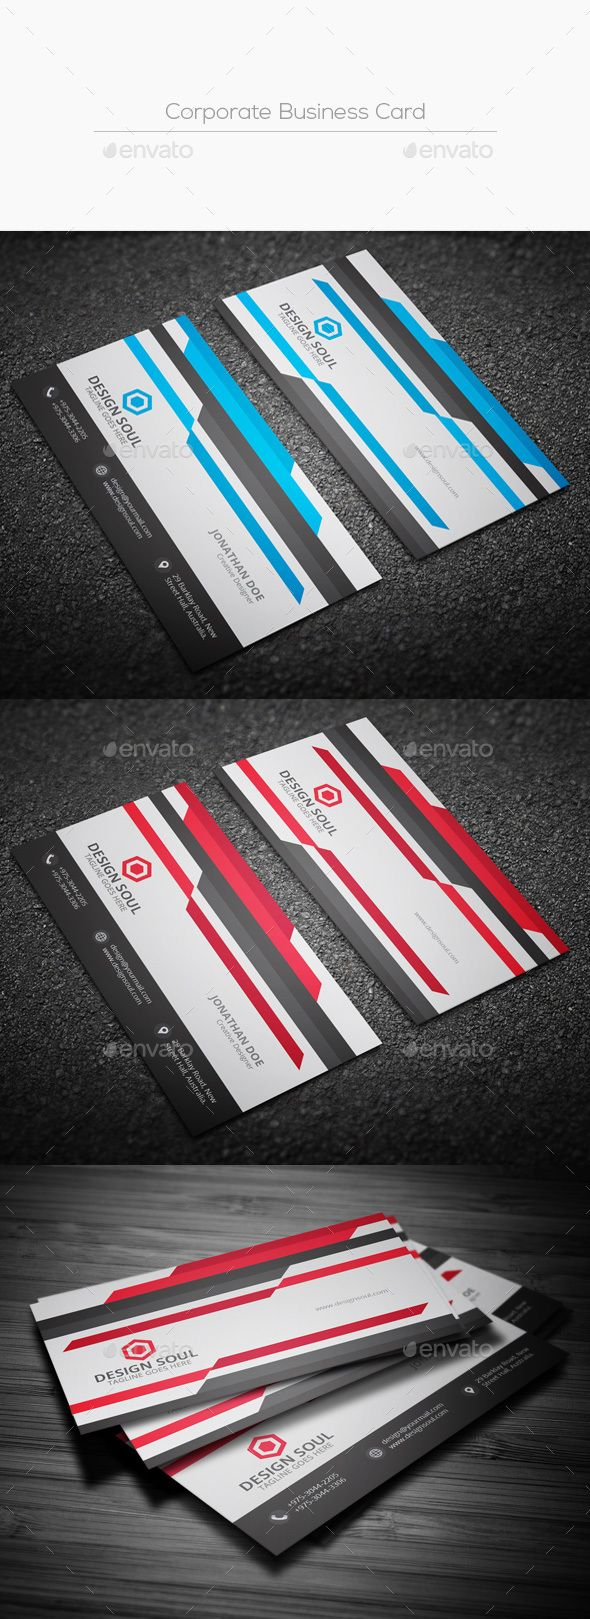 892 best Business Card Templates images on Pinterest | Business ...